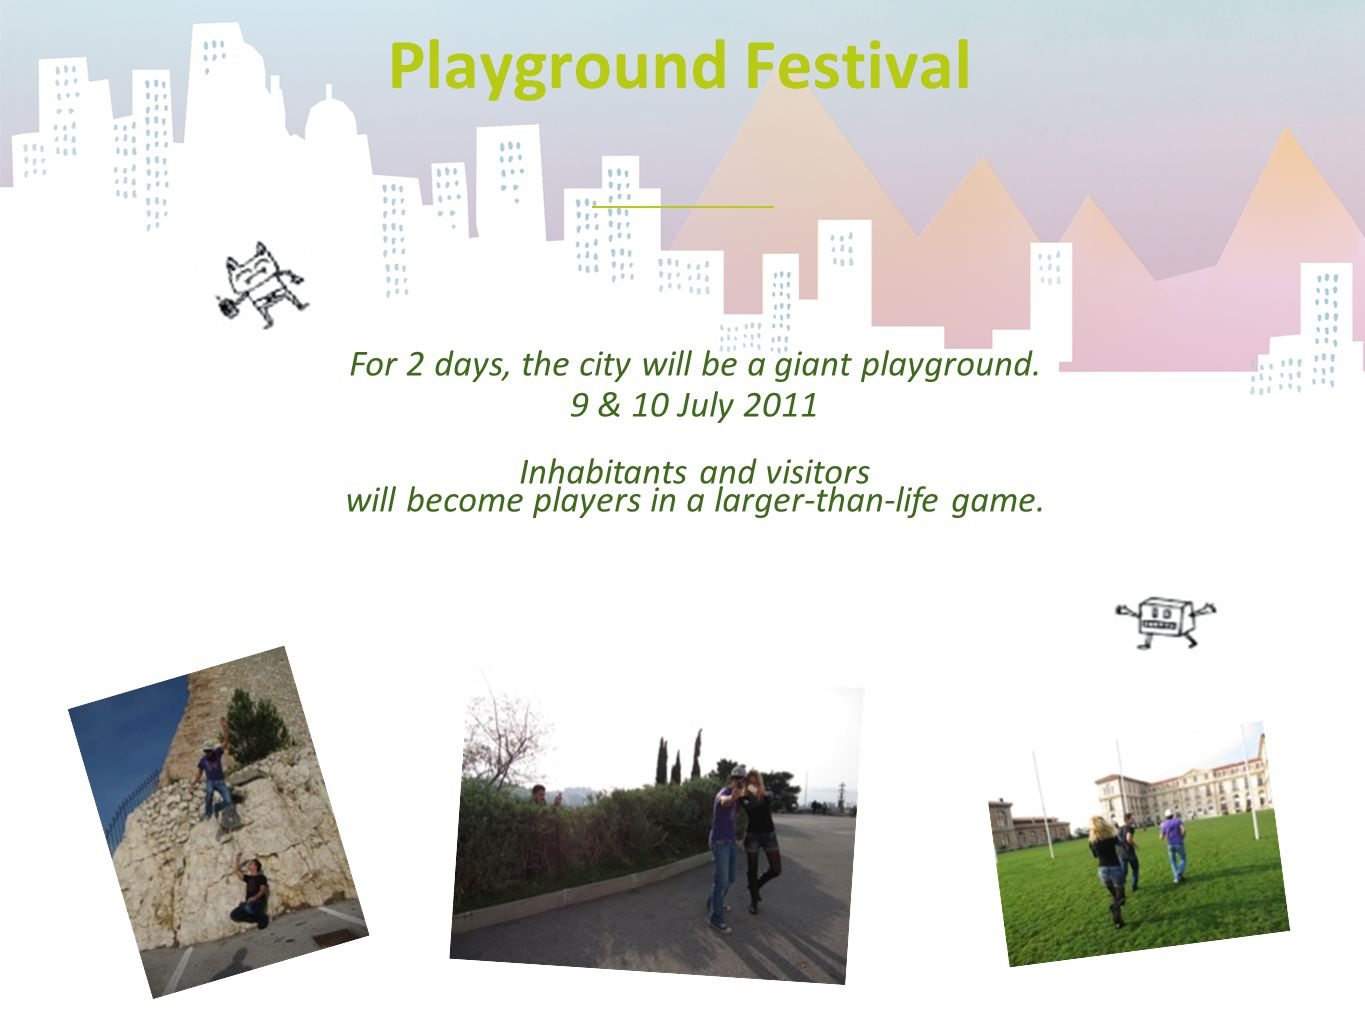 Playground Festival For 2 days, the city will be a giant playground.